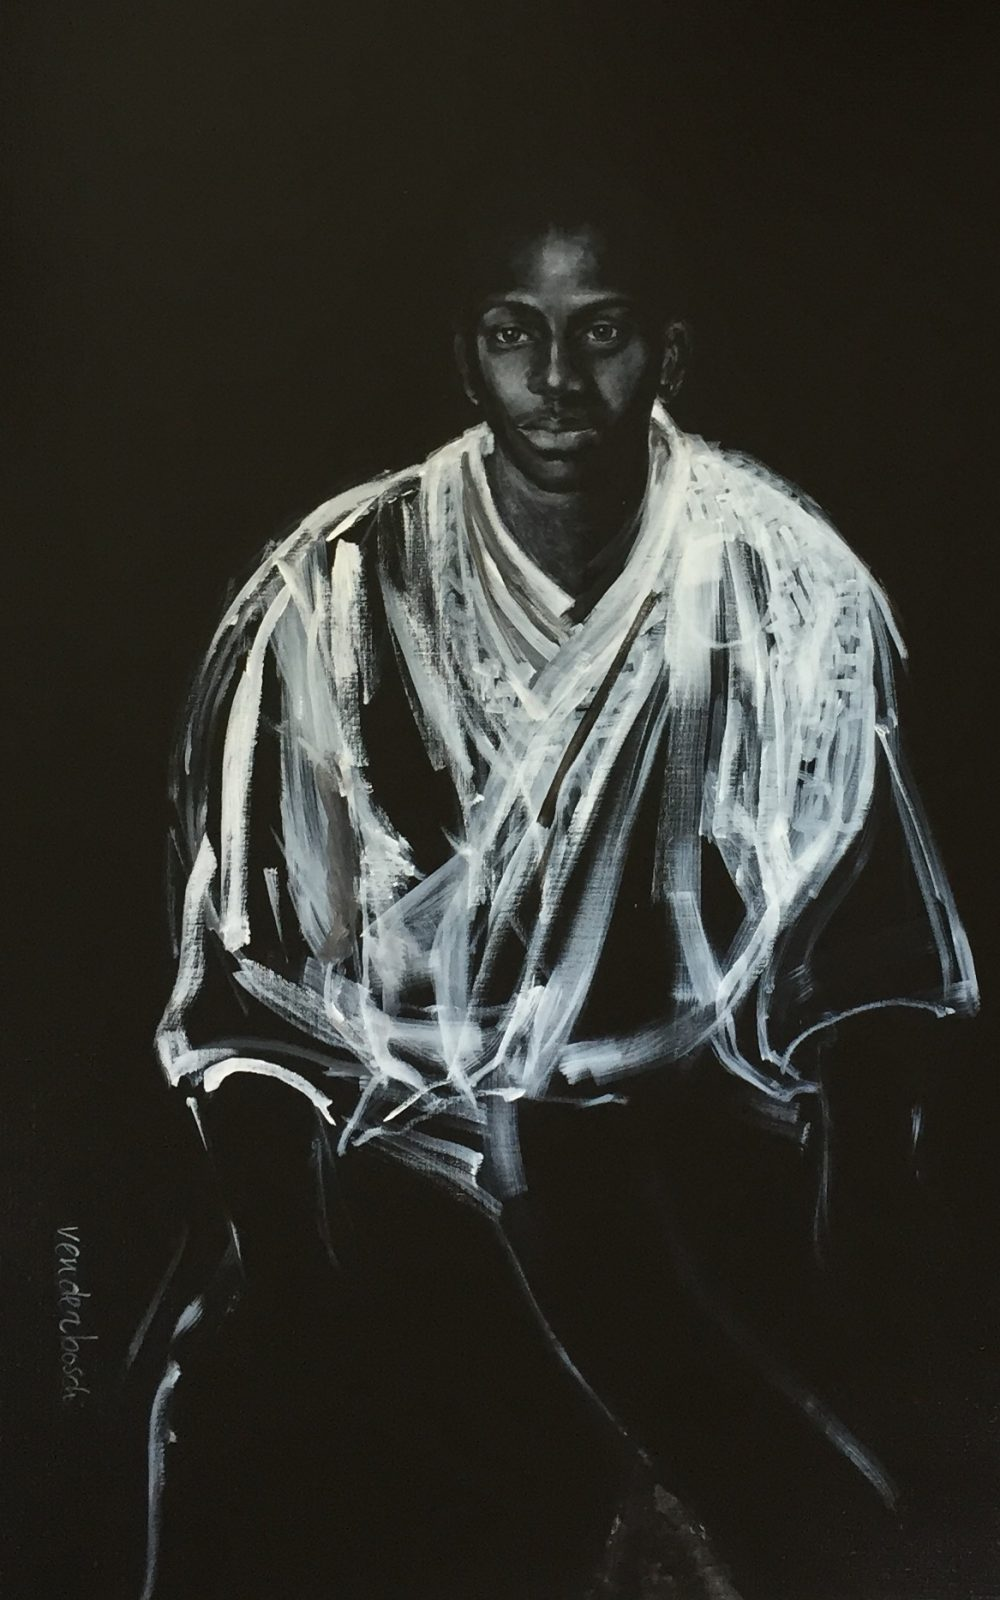 In thoughts, oil and acrylic on canvas, 120 x 100 cm